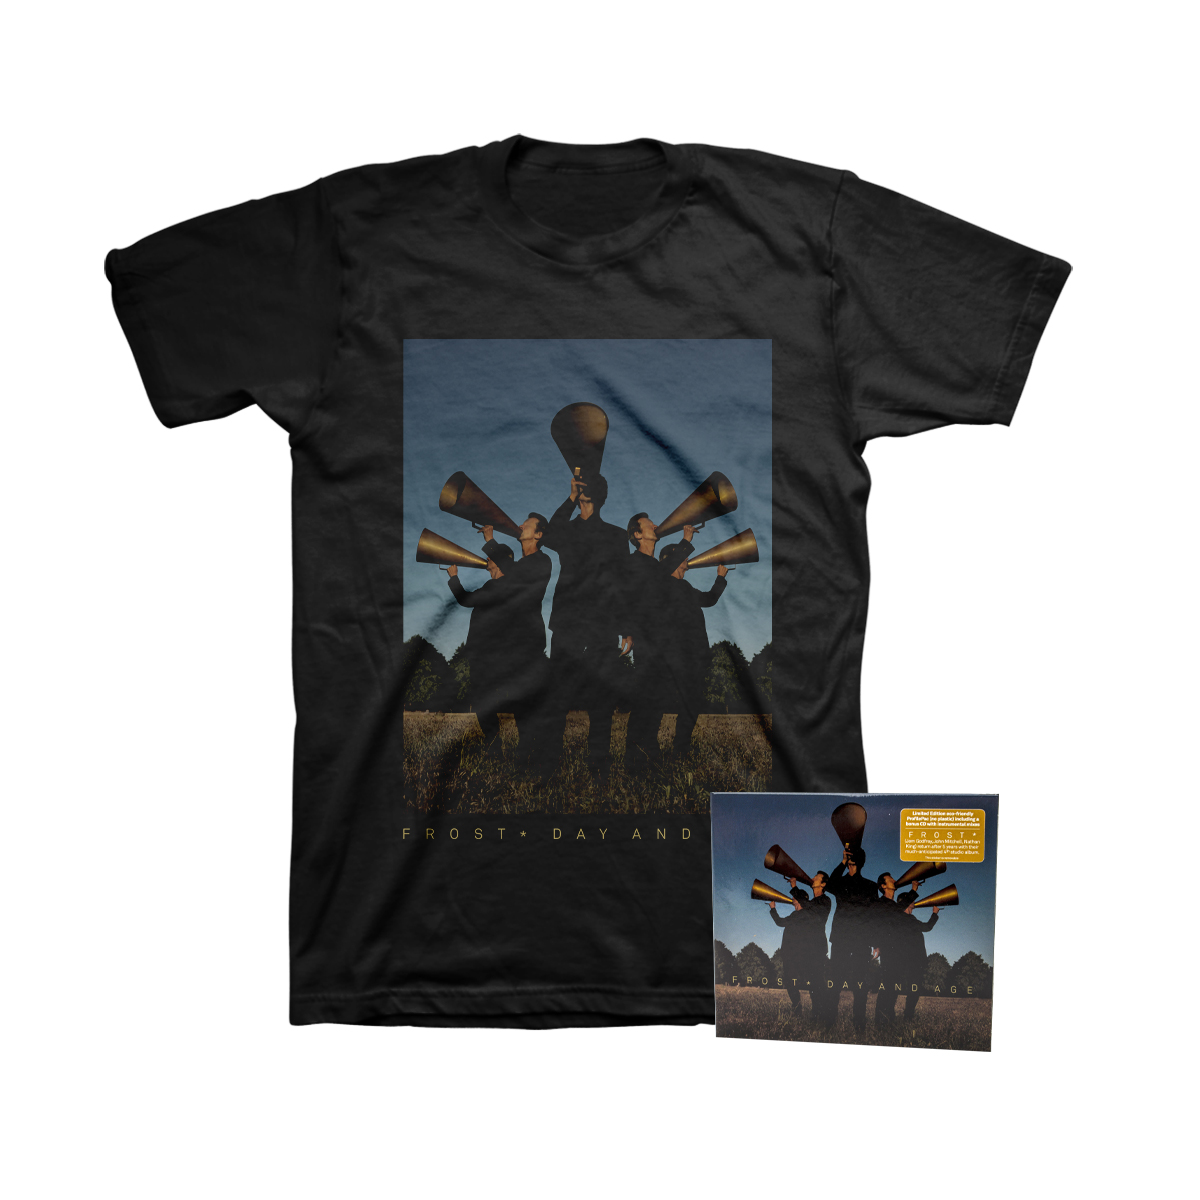 Frost* - Day And Age Digisleeve 2 CD + Black T-Shirt + Digital Download